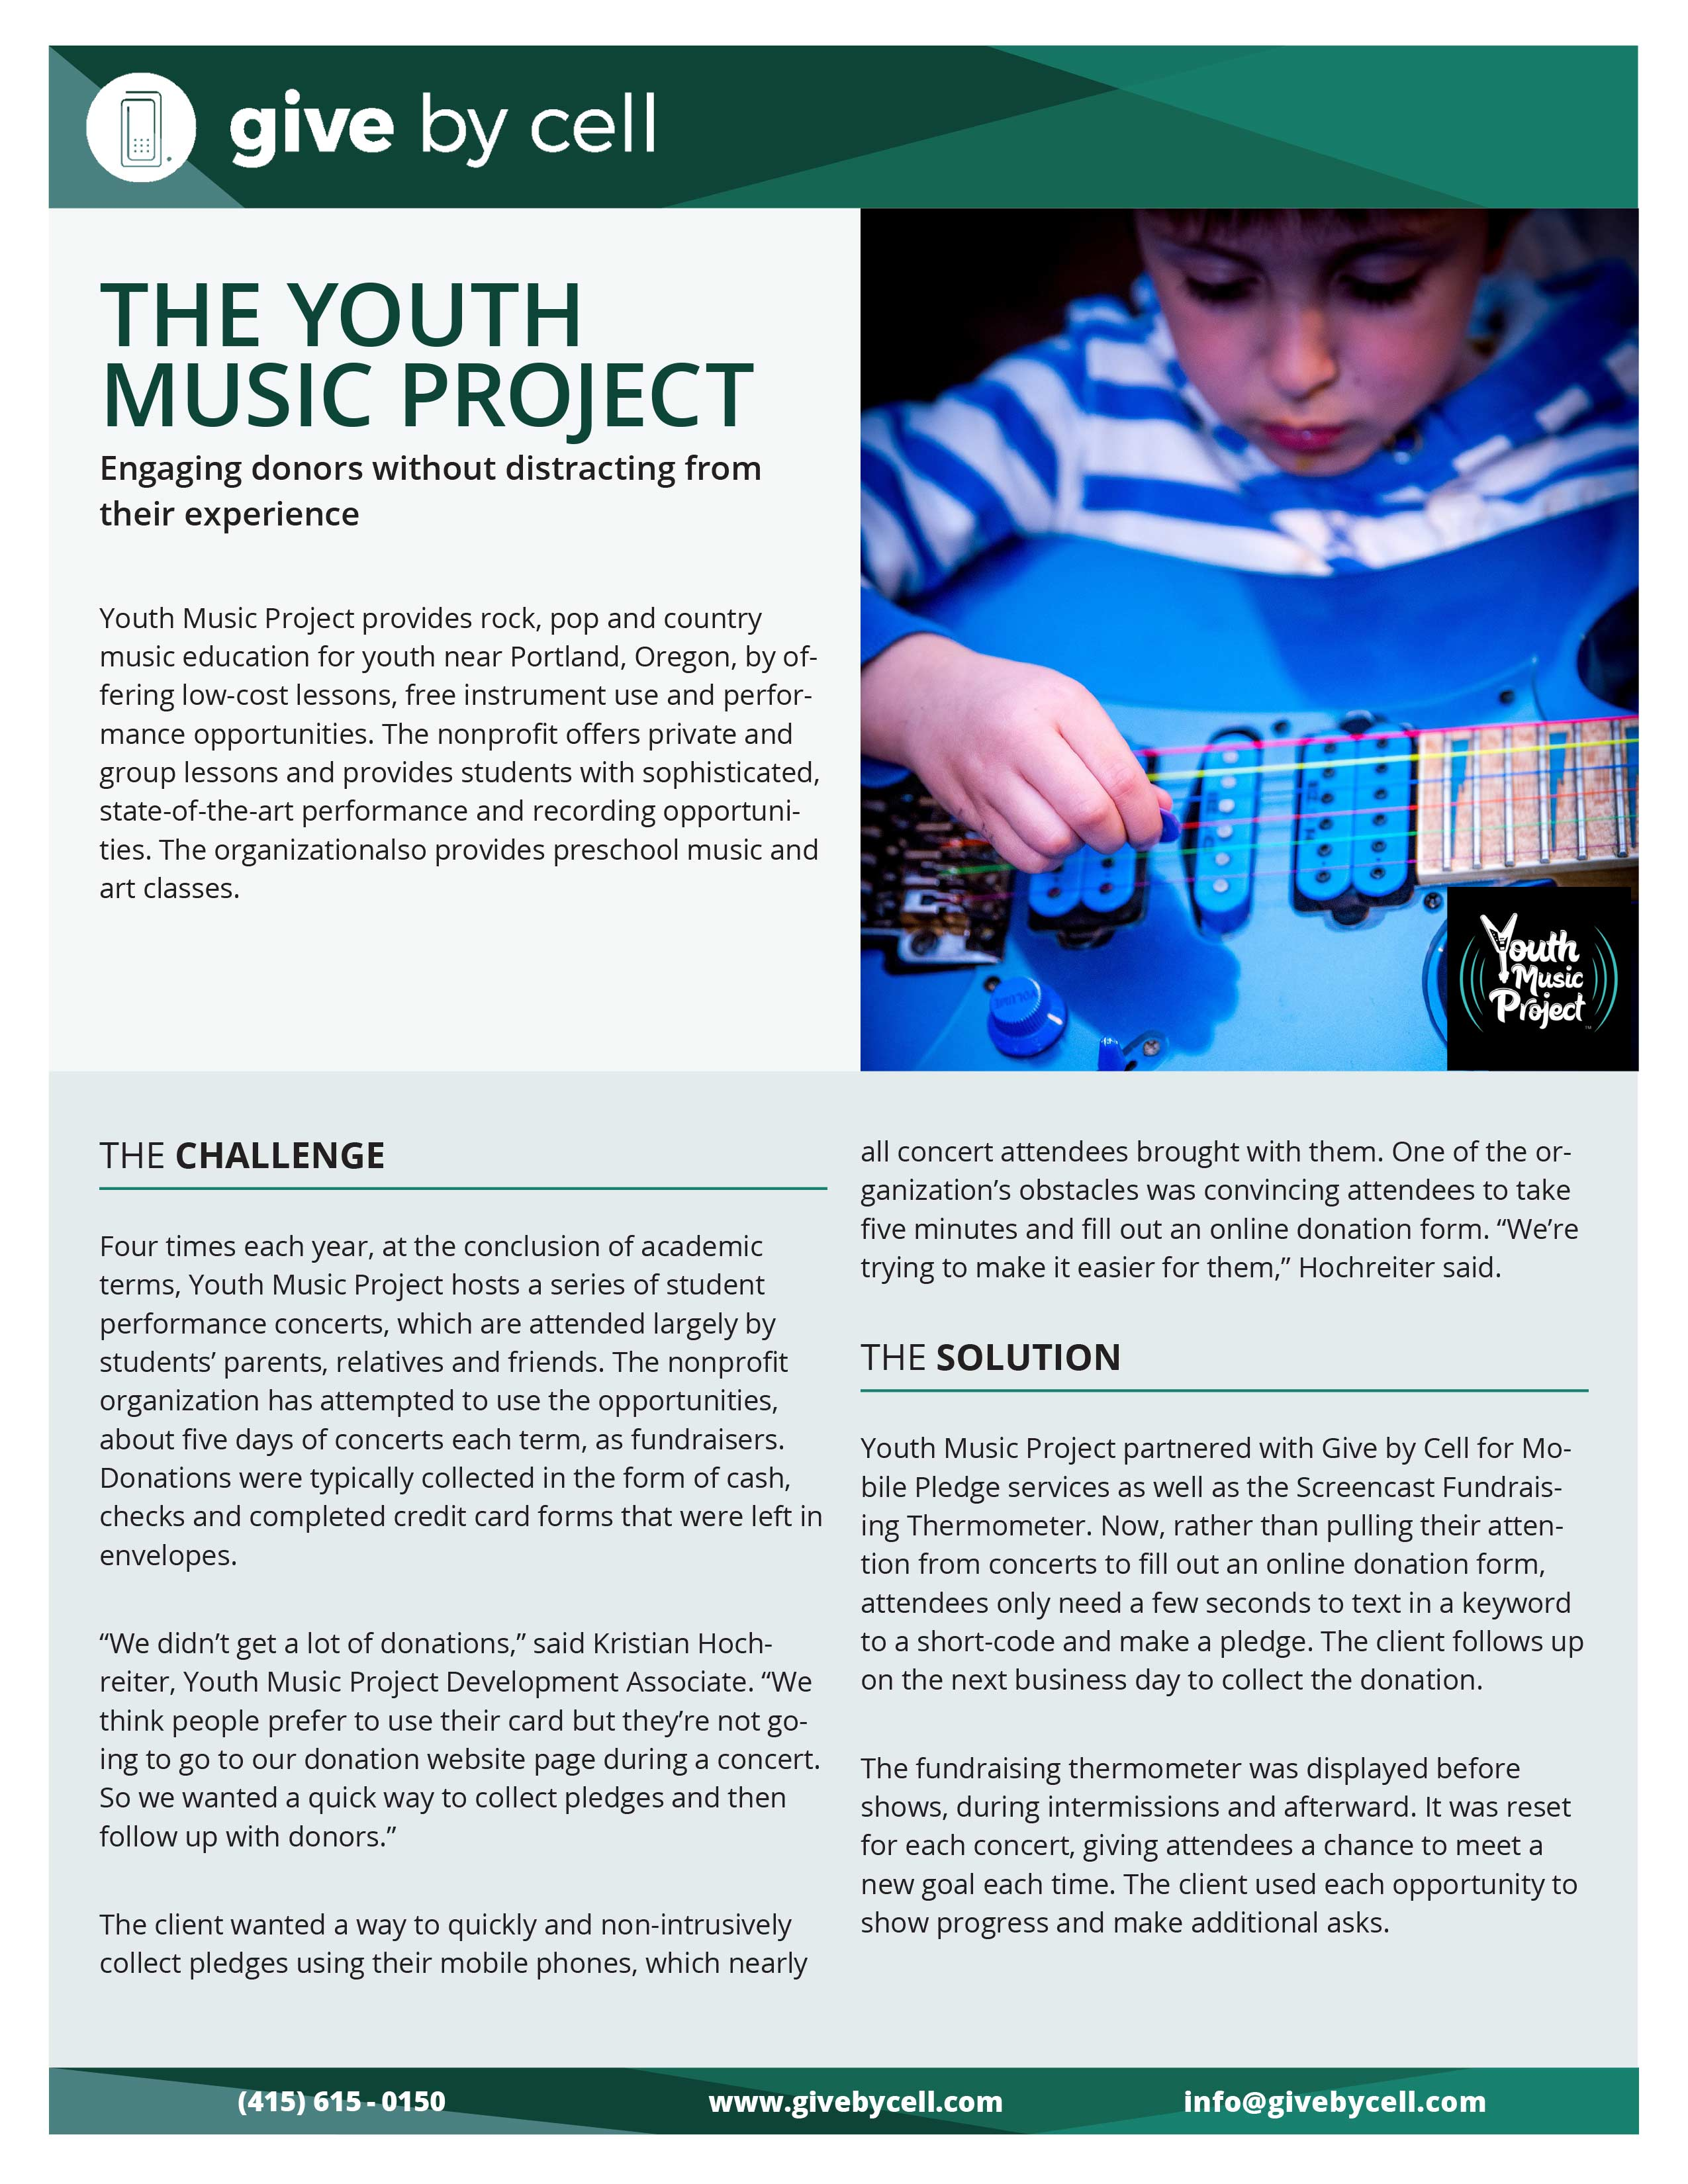 The Youth Music Project